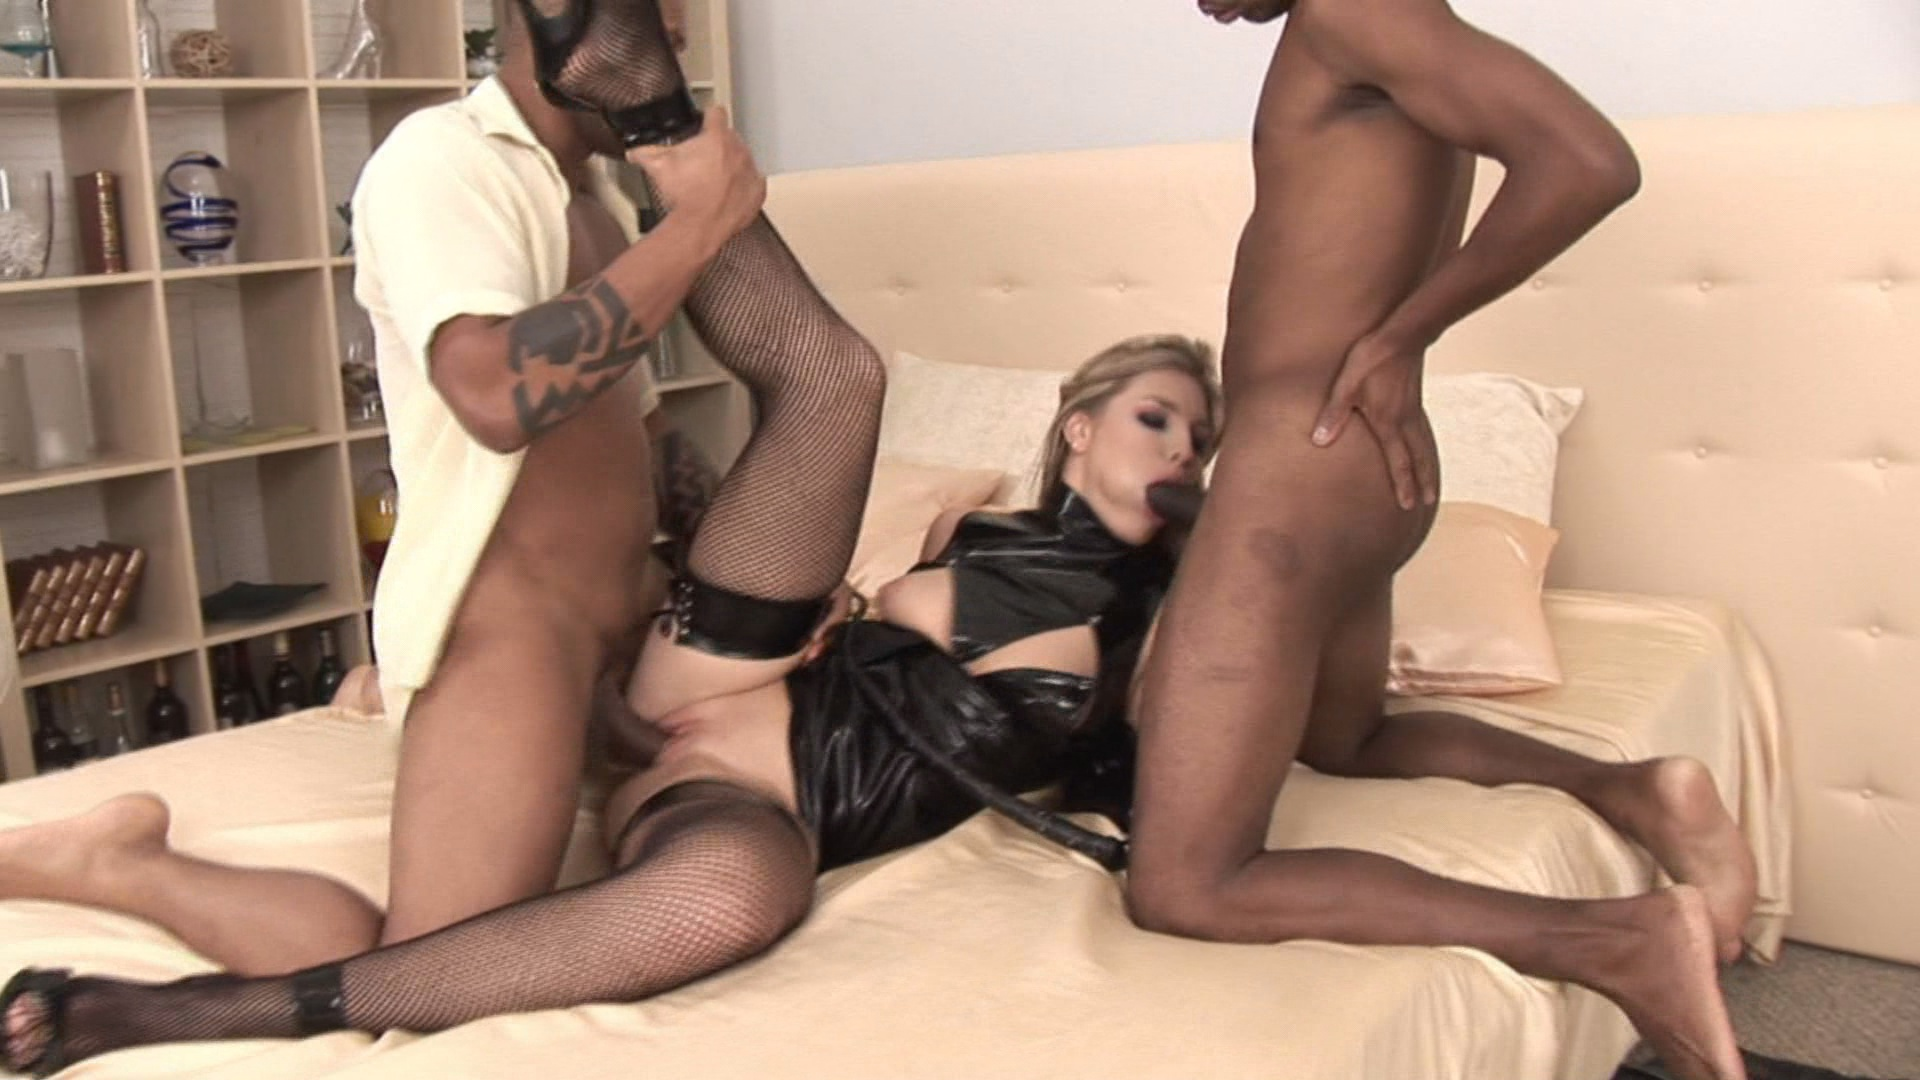 Blondes Look Good On Blacks xvideos168108